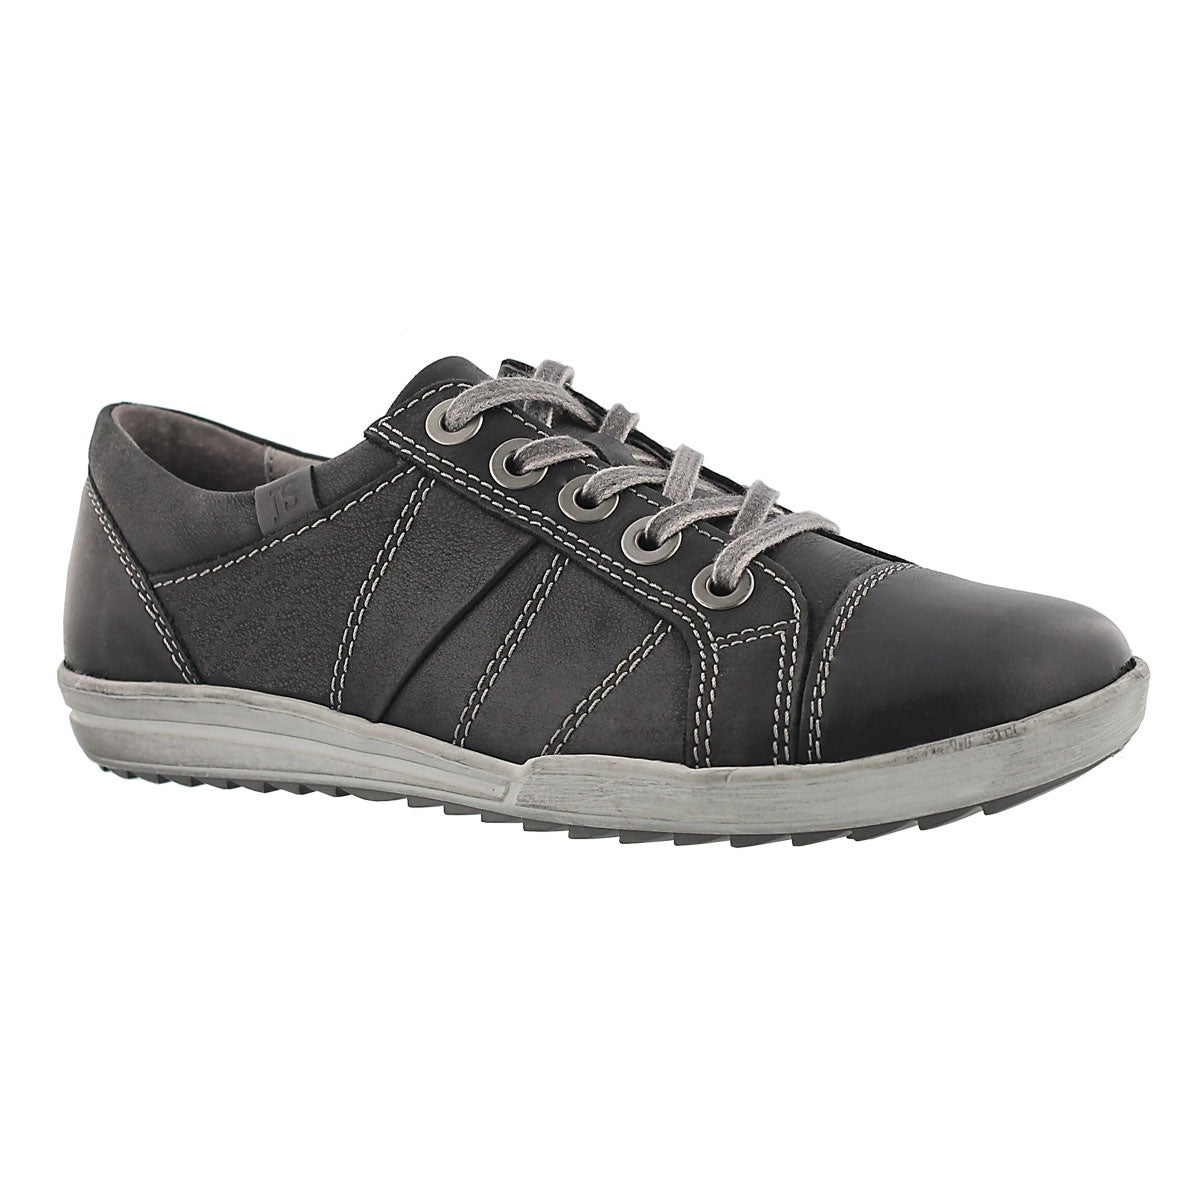 Women's DANY 05 black leather oxford sneakers